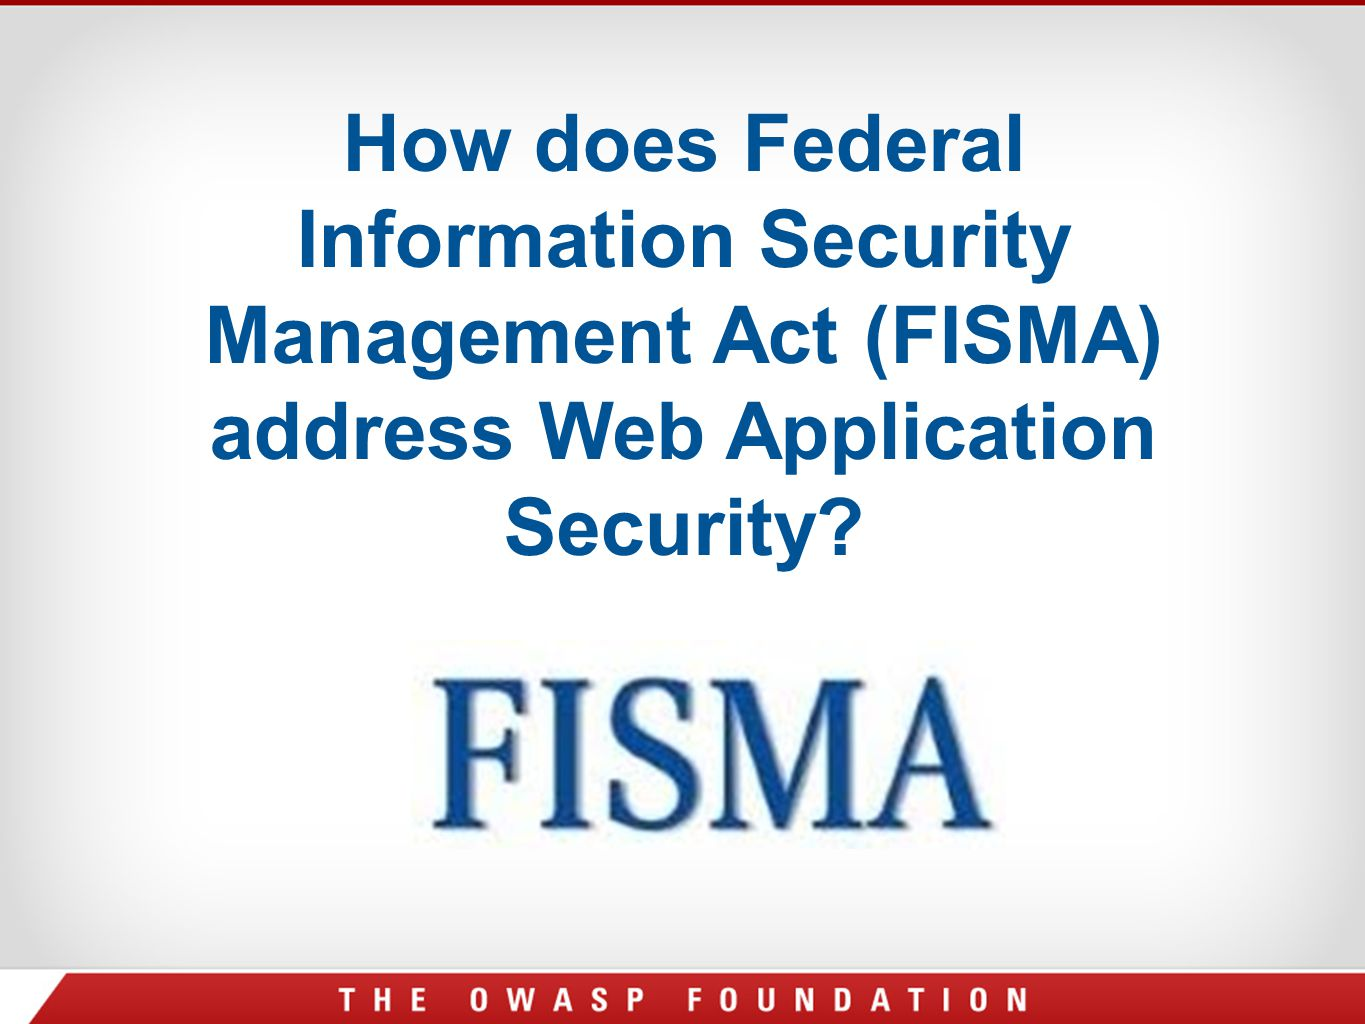 How does Federal Information Security Management Act (FISMA) address Web Application Security